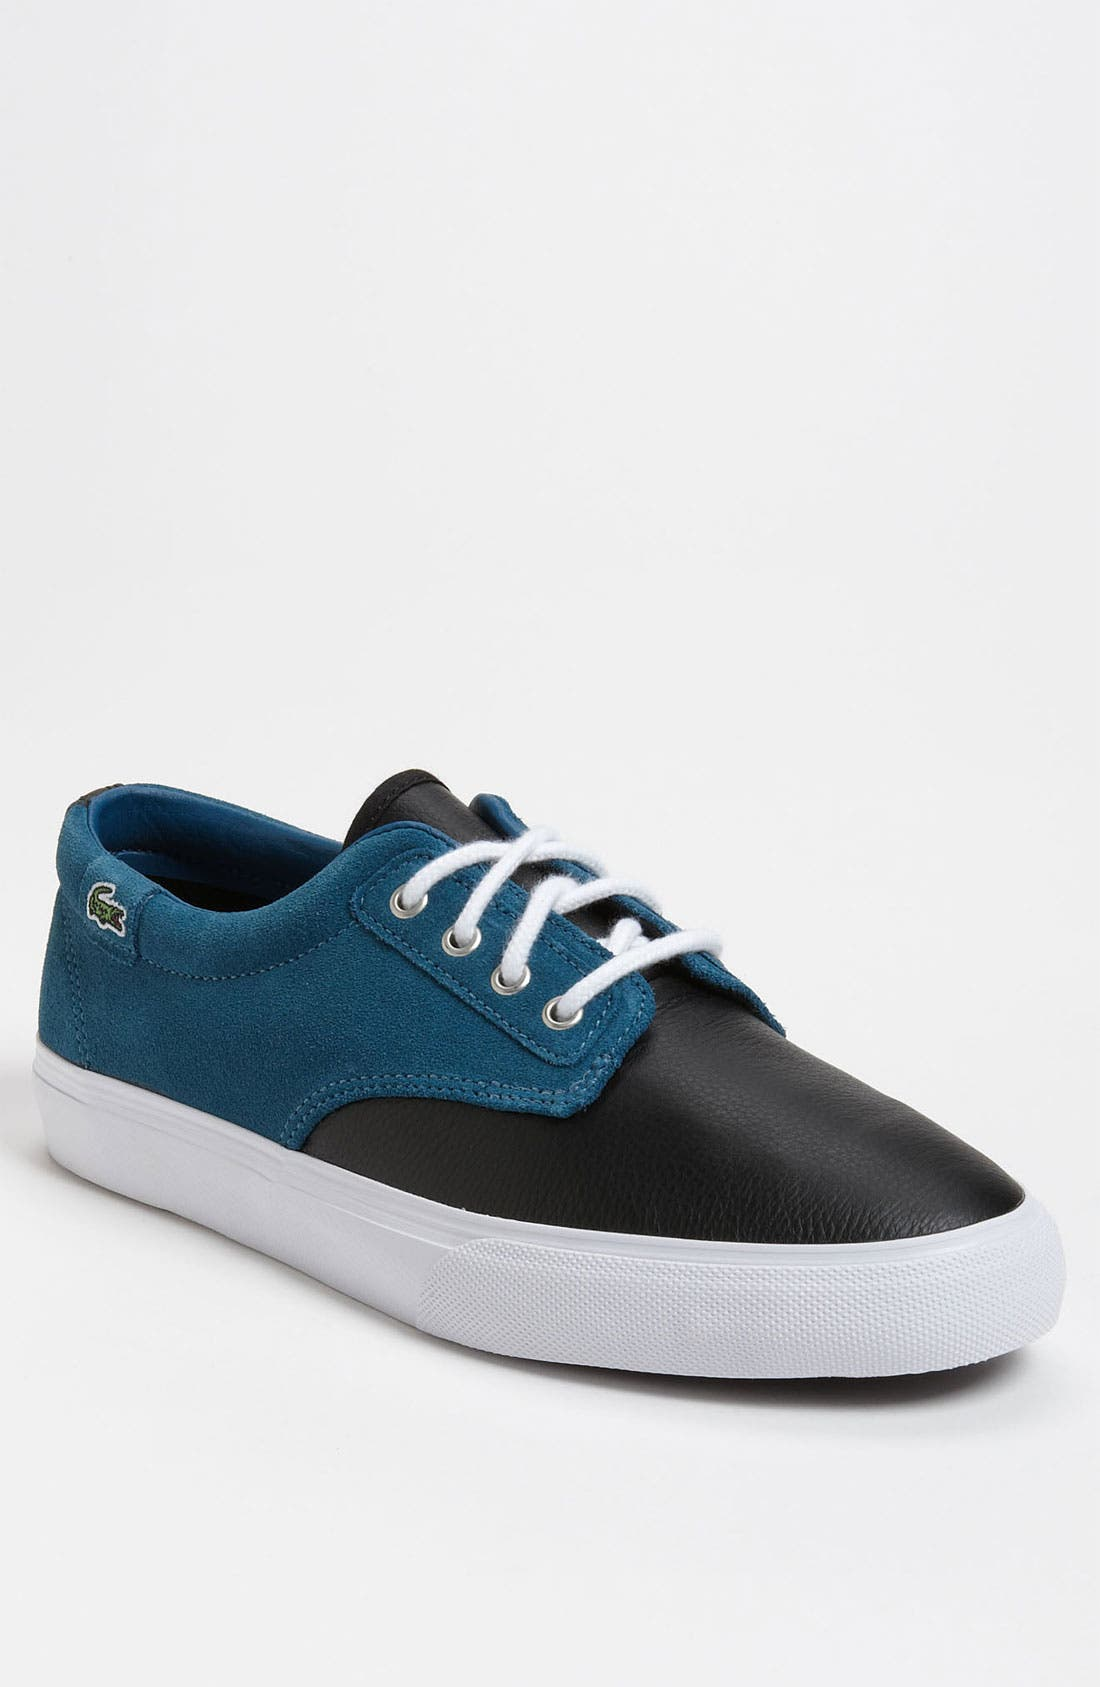 Alternate Image 1 Selected - Lacoste 'Barbados LMS' Sneaker